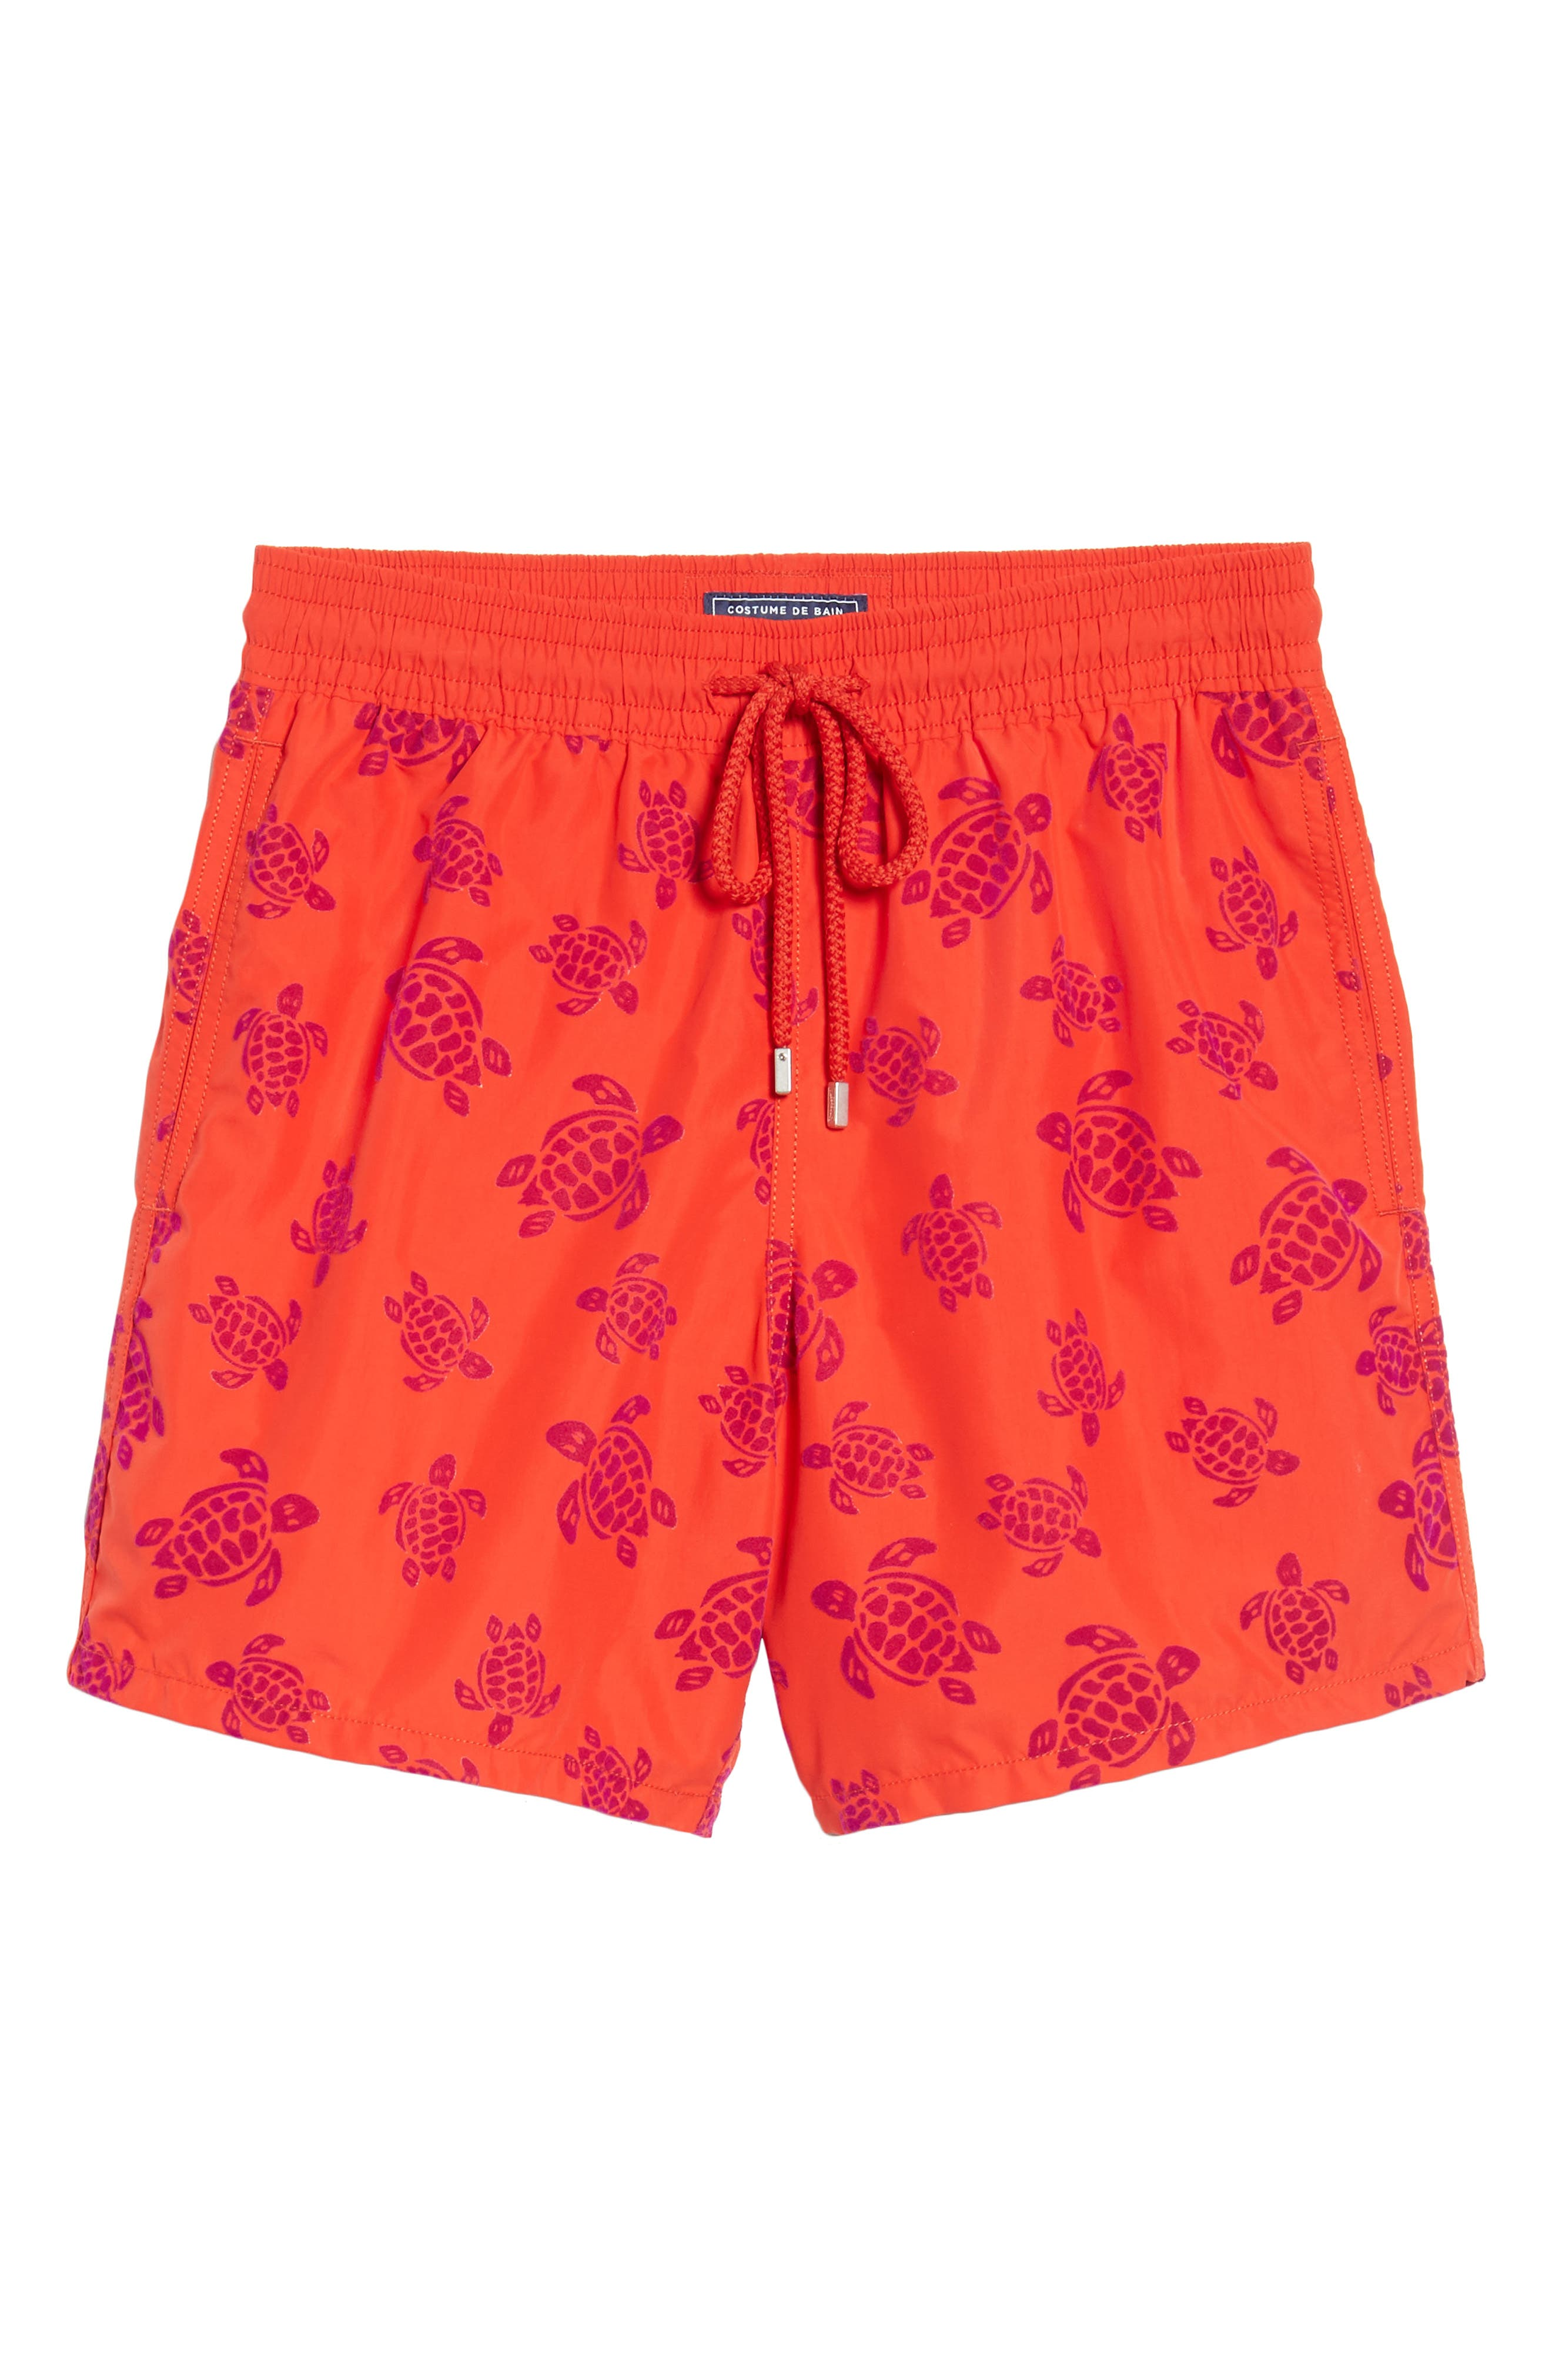 Flocked Turtles Swim Trunks,                             Alternate thumbnail 6, color,                             POPPY RED